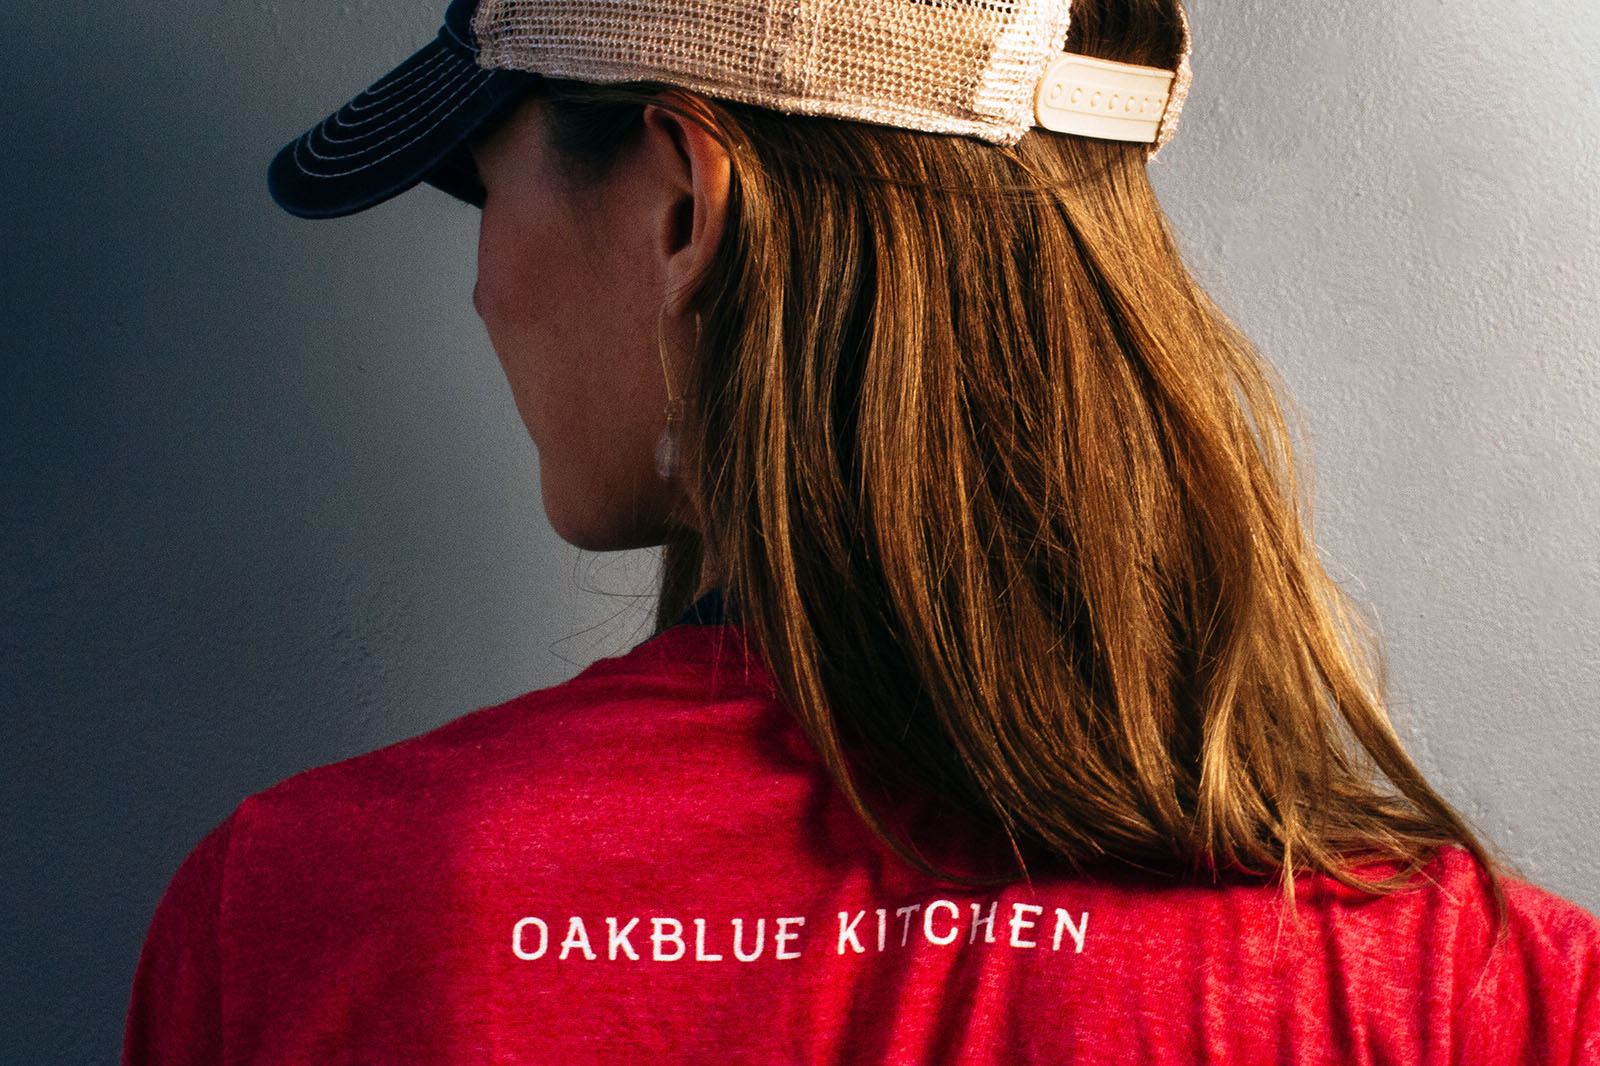 Woman modeling the Oakblue Kitchen restaurant hat and shirt design. On the top back of shoulder of shirt, the barbecue joint name is in the custom designed font and typeface made for the brand.